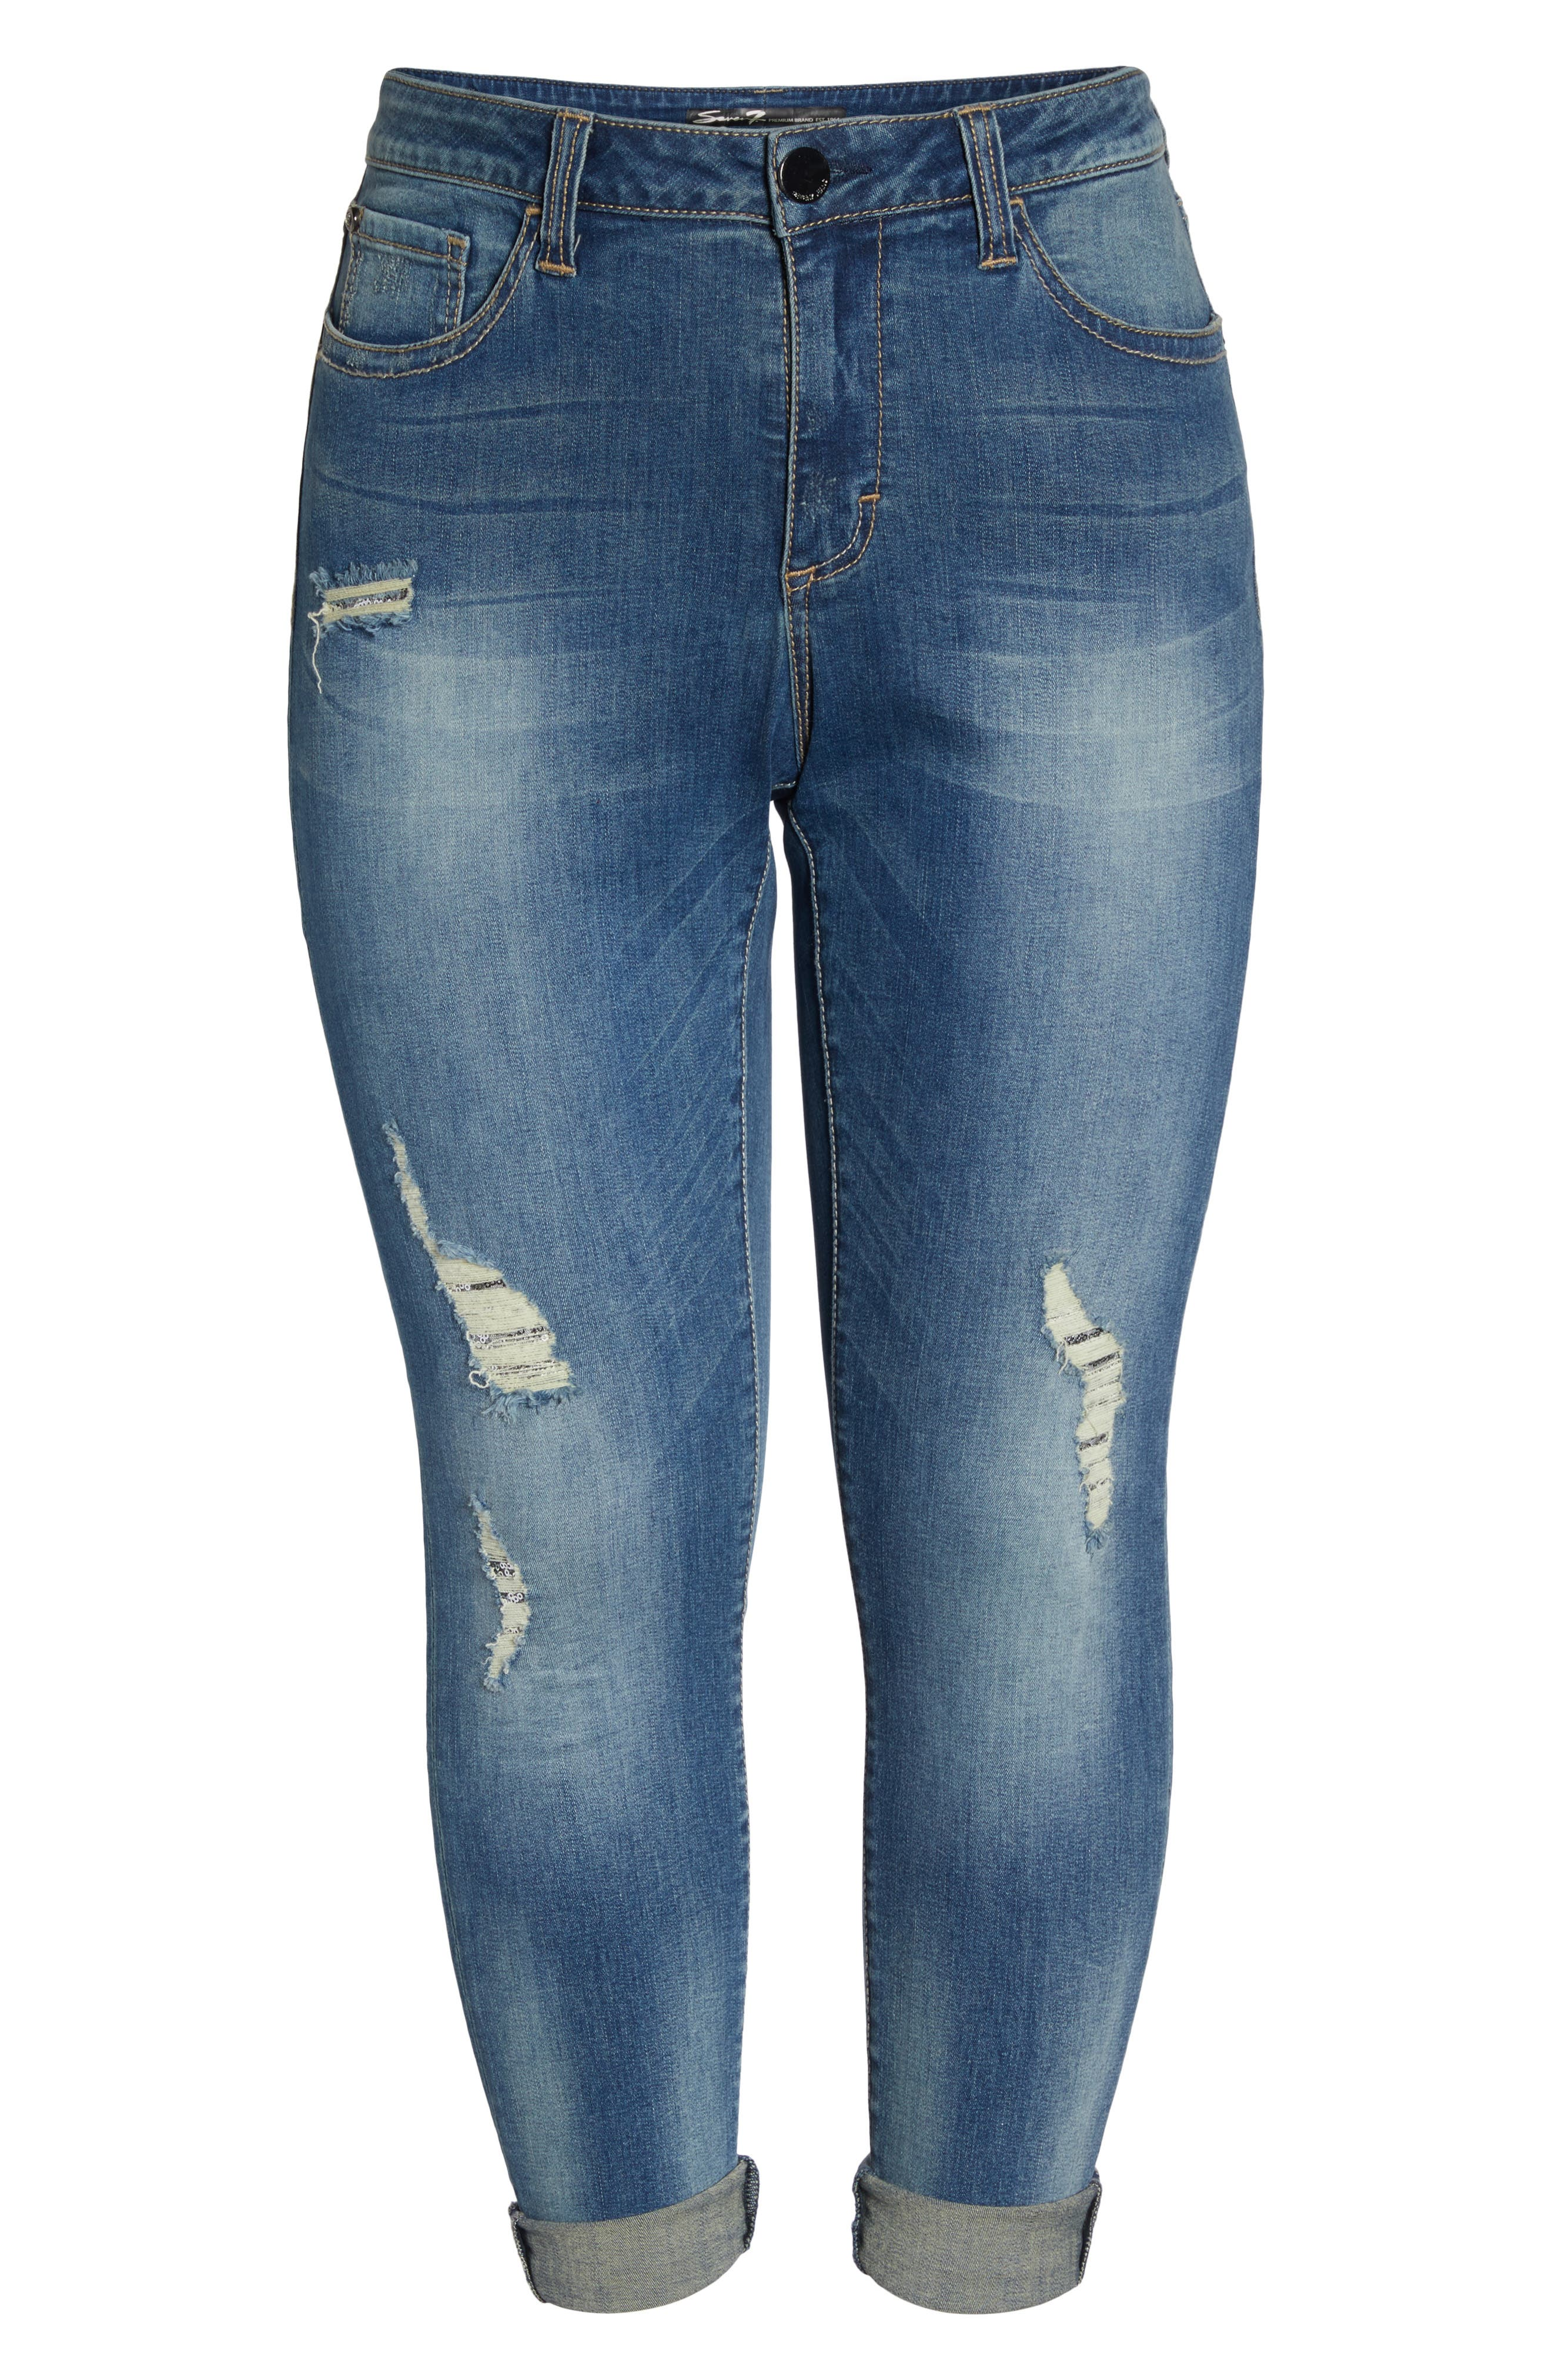 Ripped & Embellished Skinny Jeans,                             Alternate thumbnail 6, color,                             BANKS